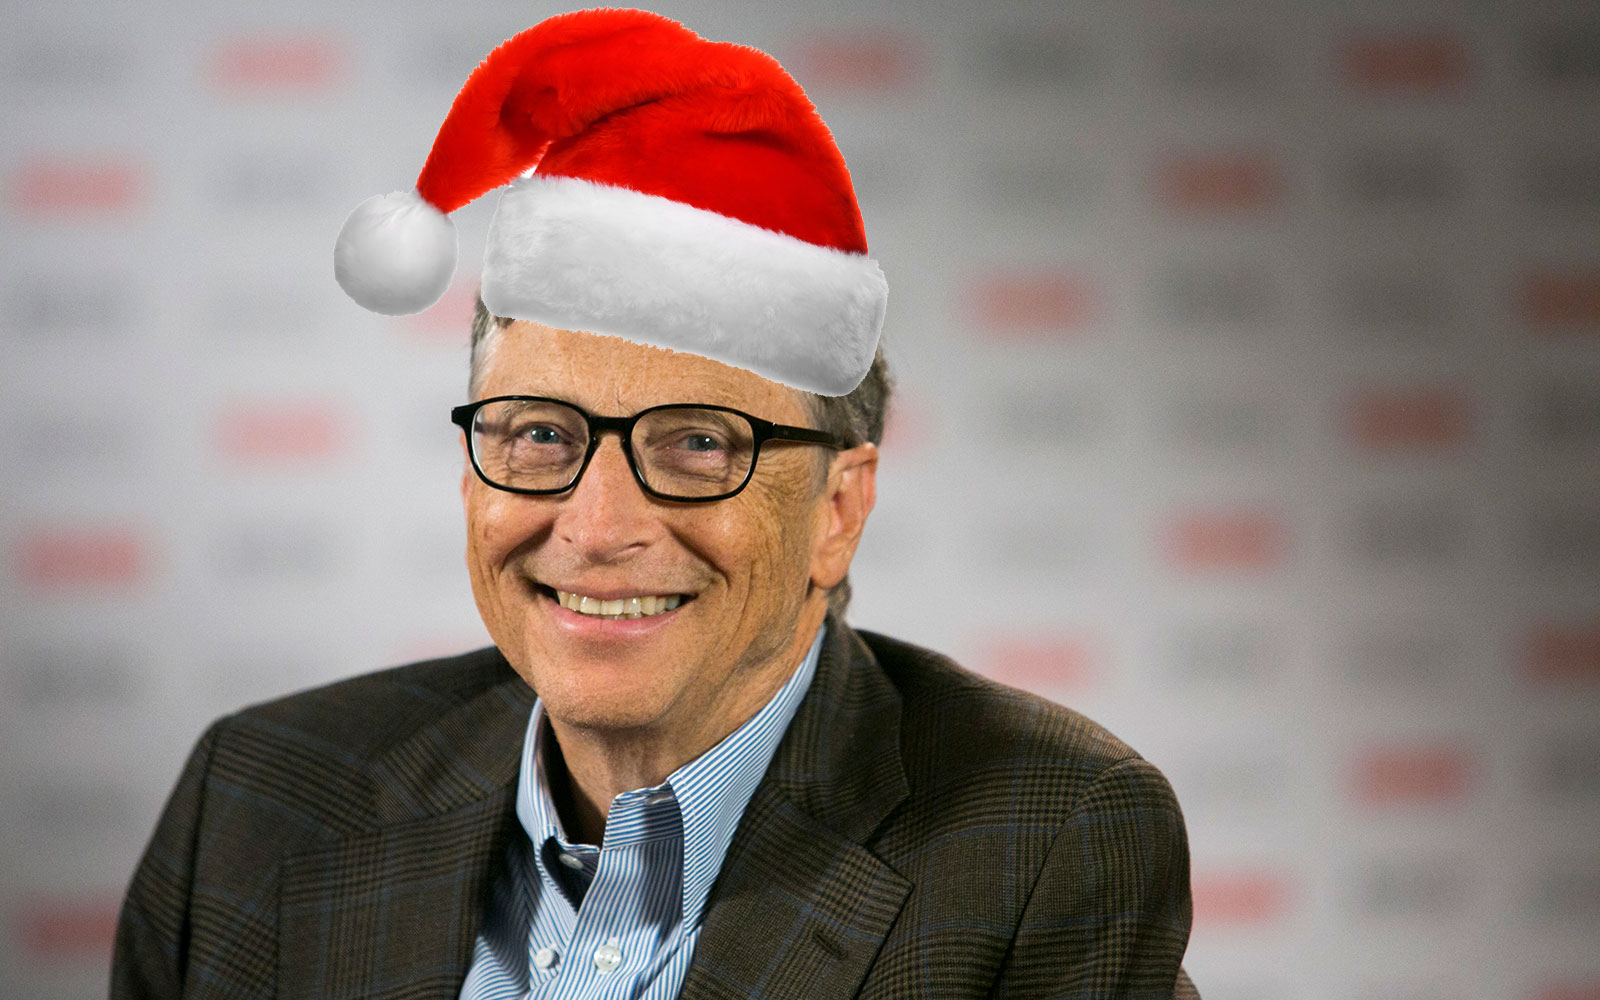 What Bill Gates Gifted in Reddit's Secret Santa This Year